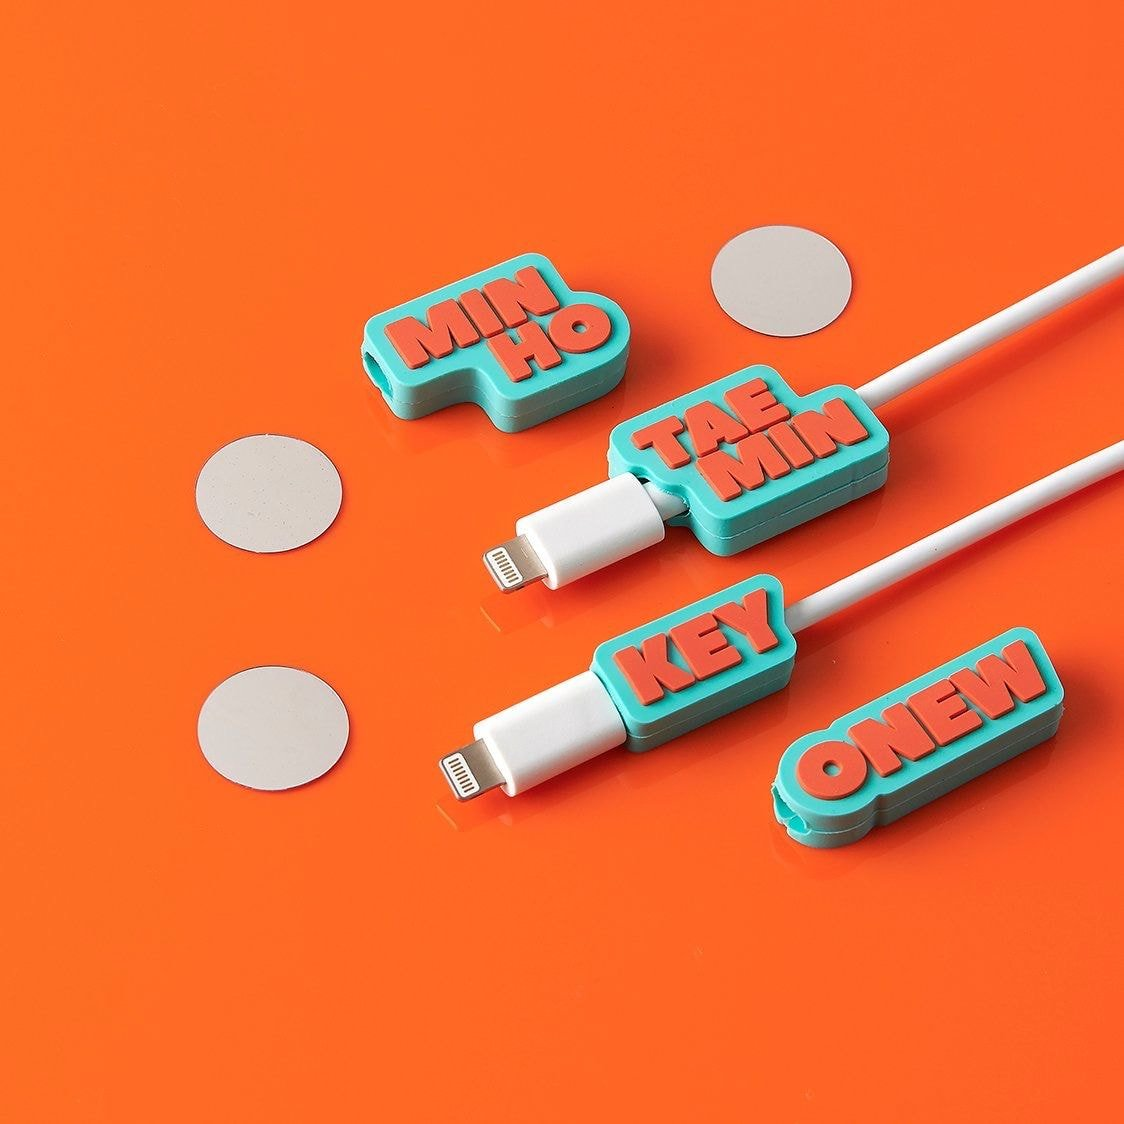 sm ent cable bite shinee